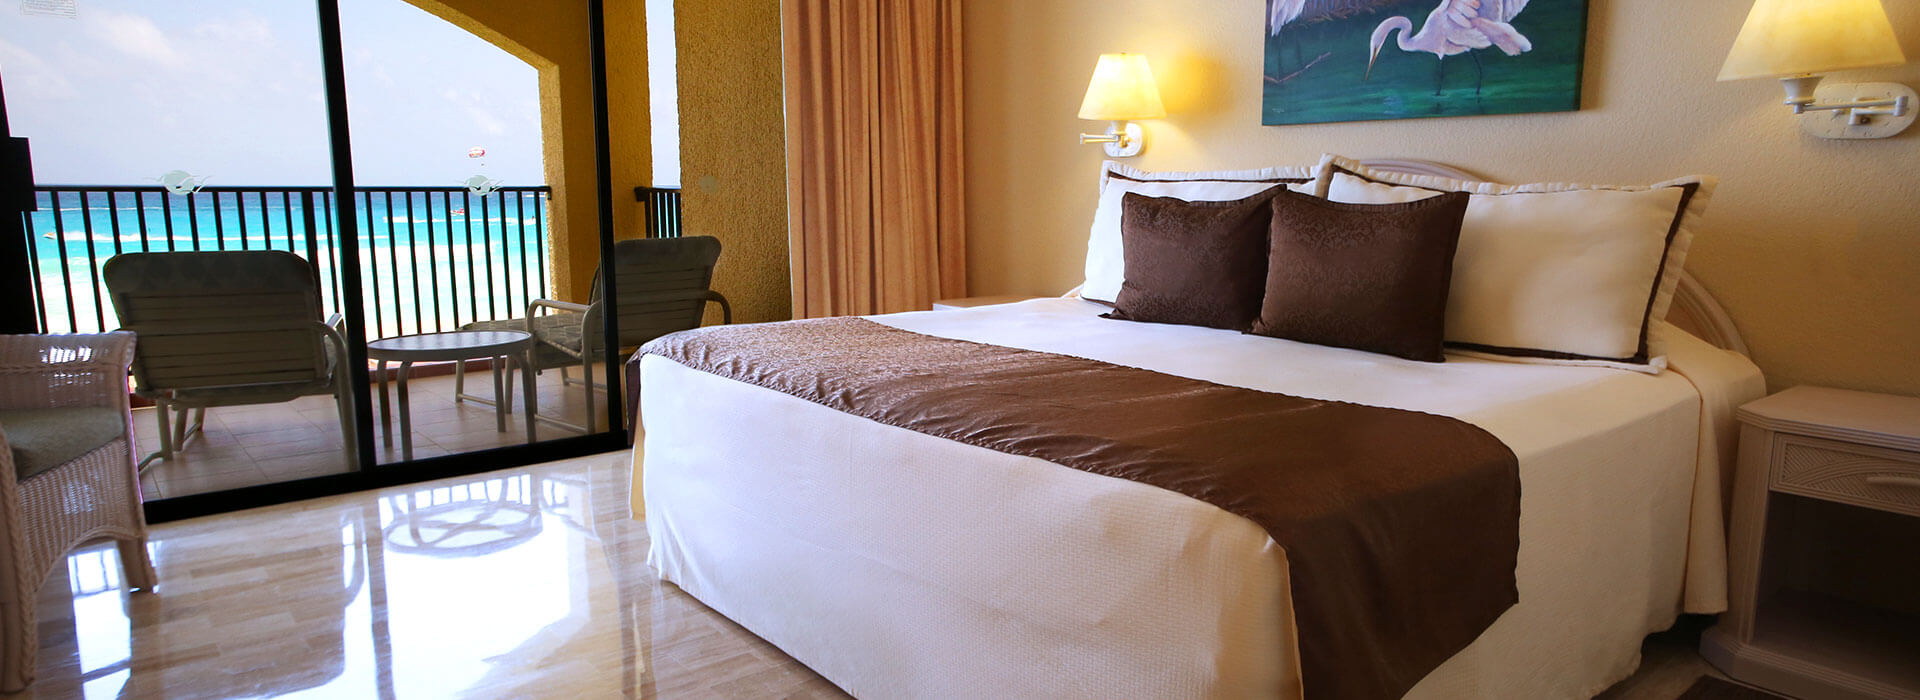 suite in cancun resort with king size bed